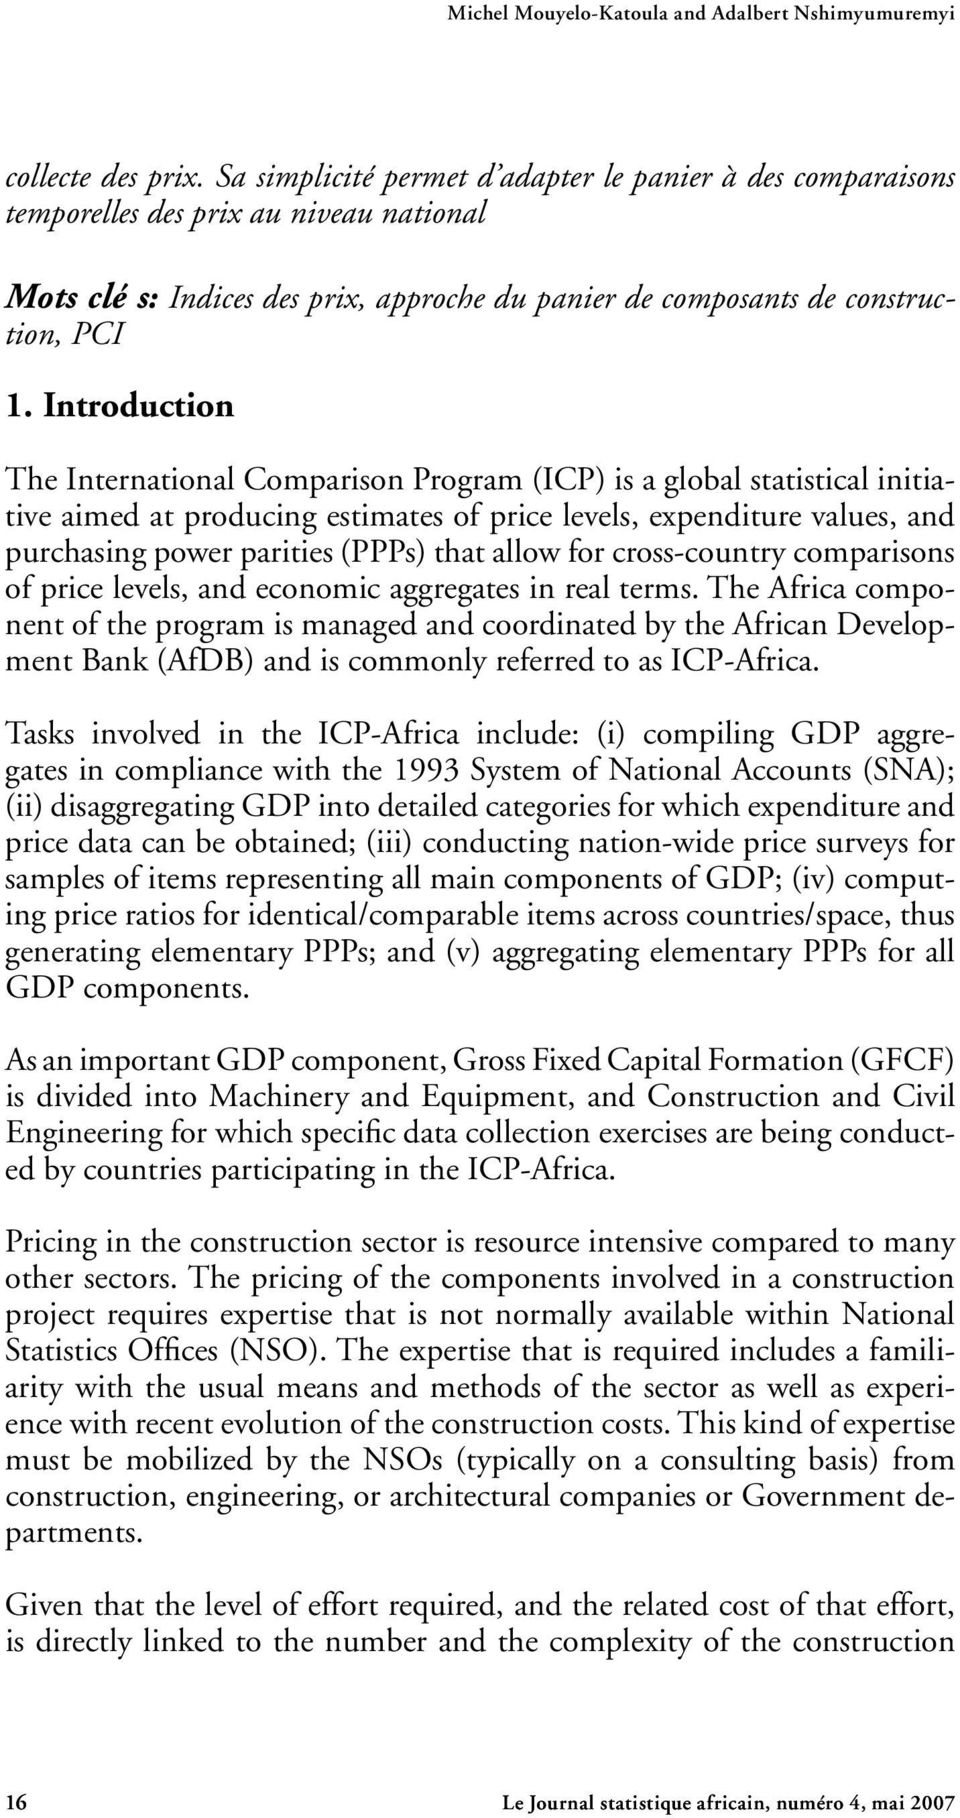 Introduction The International Comparison Program (ICP) is a global statistical initiative aimed at producing estimates of price levels, expenditure values, and purchasing power parities (PPPs) that